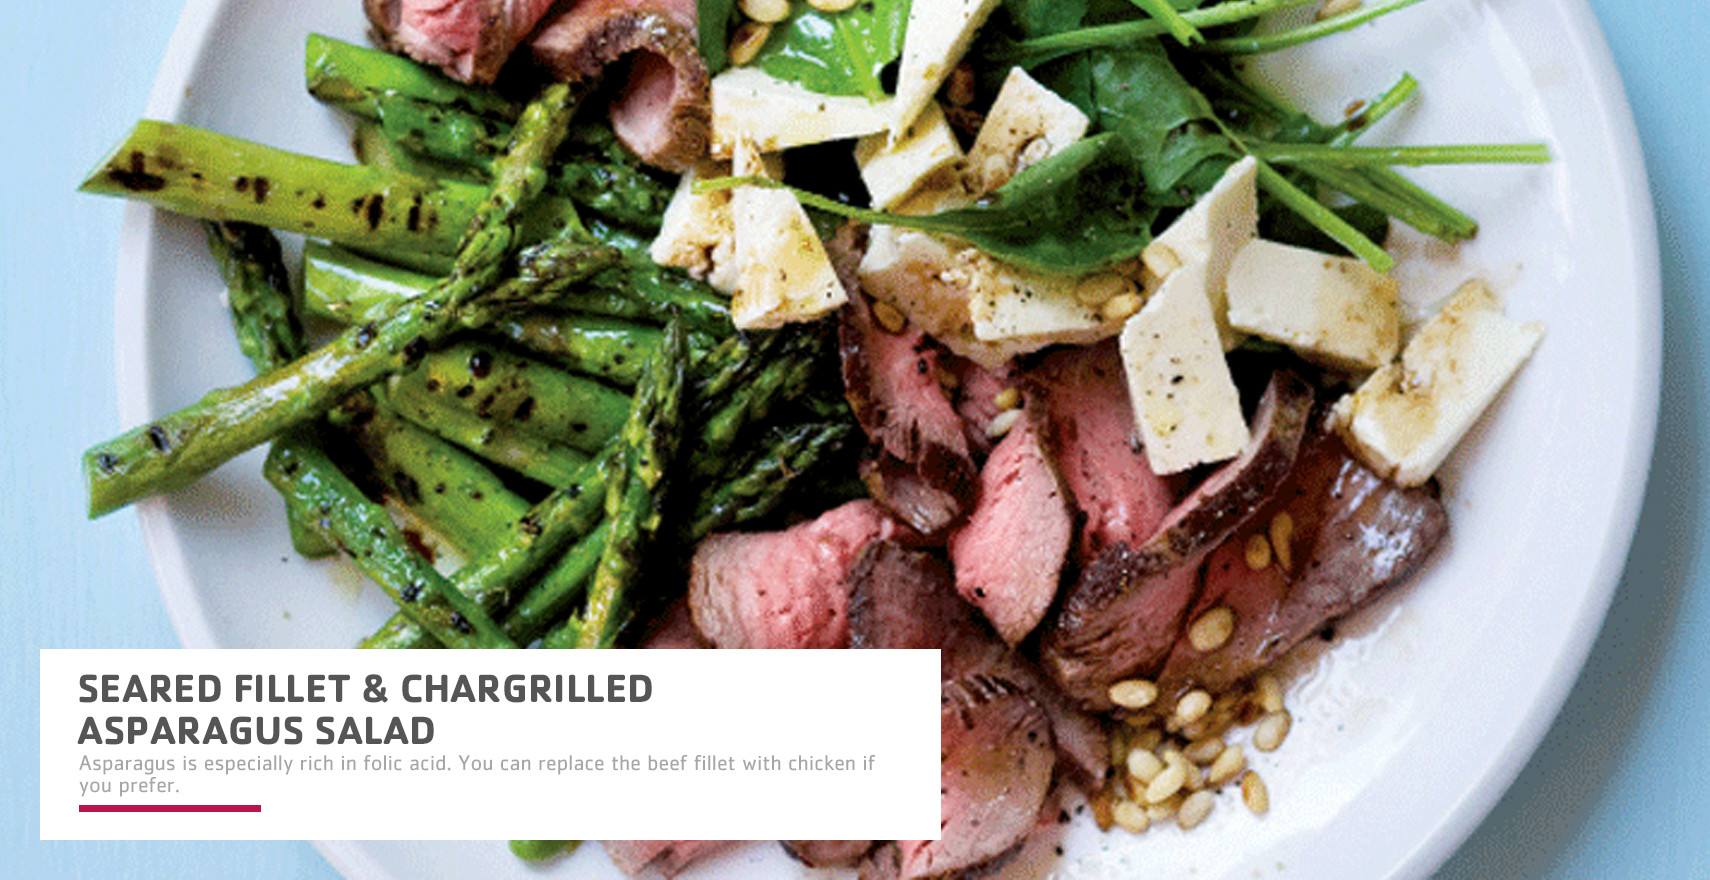 seared-fillet-and-chargrilled-asparagus-salad.jpg